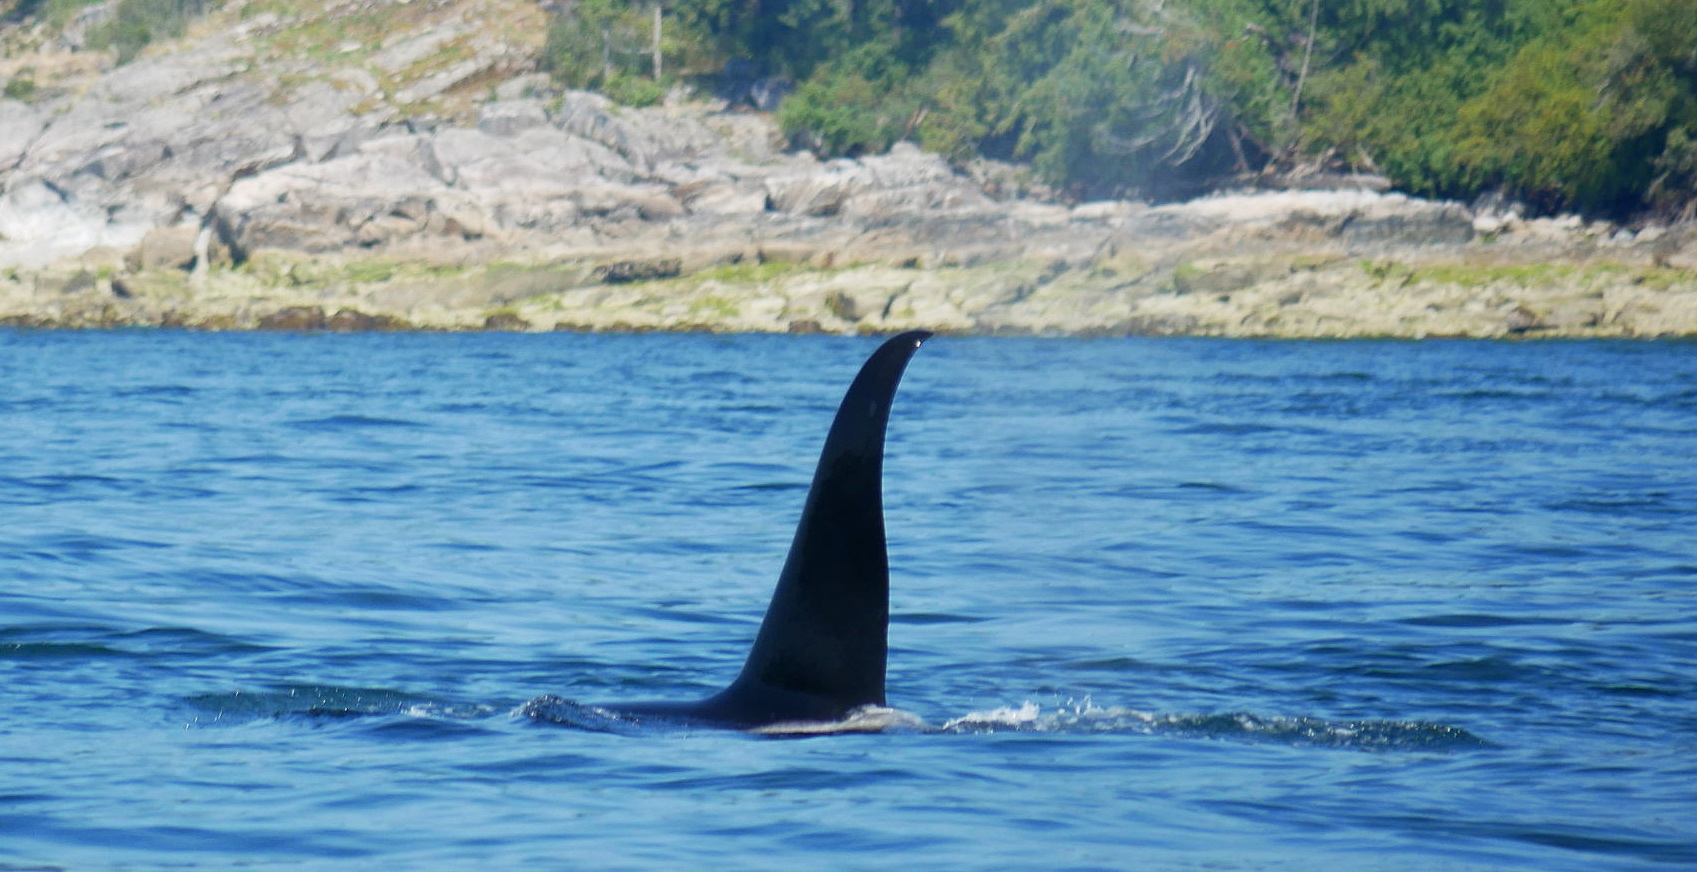 """T102 - """"Beardslee"""". Notice the distinct curve in the tip of his dorsal? Photo by Cheyenne Brewster (10:30)."""